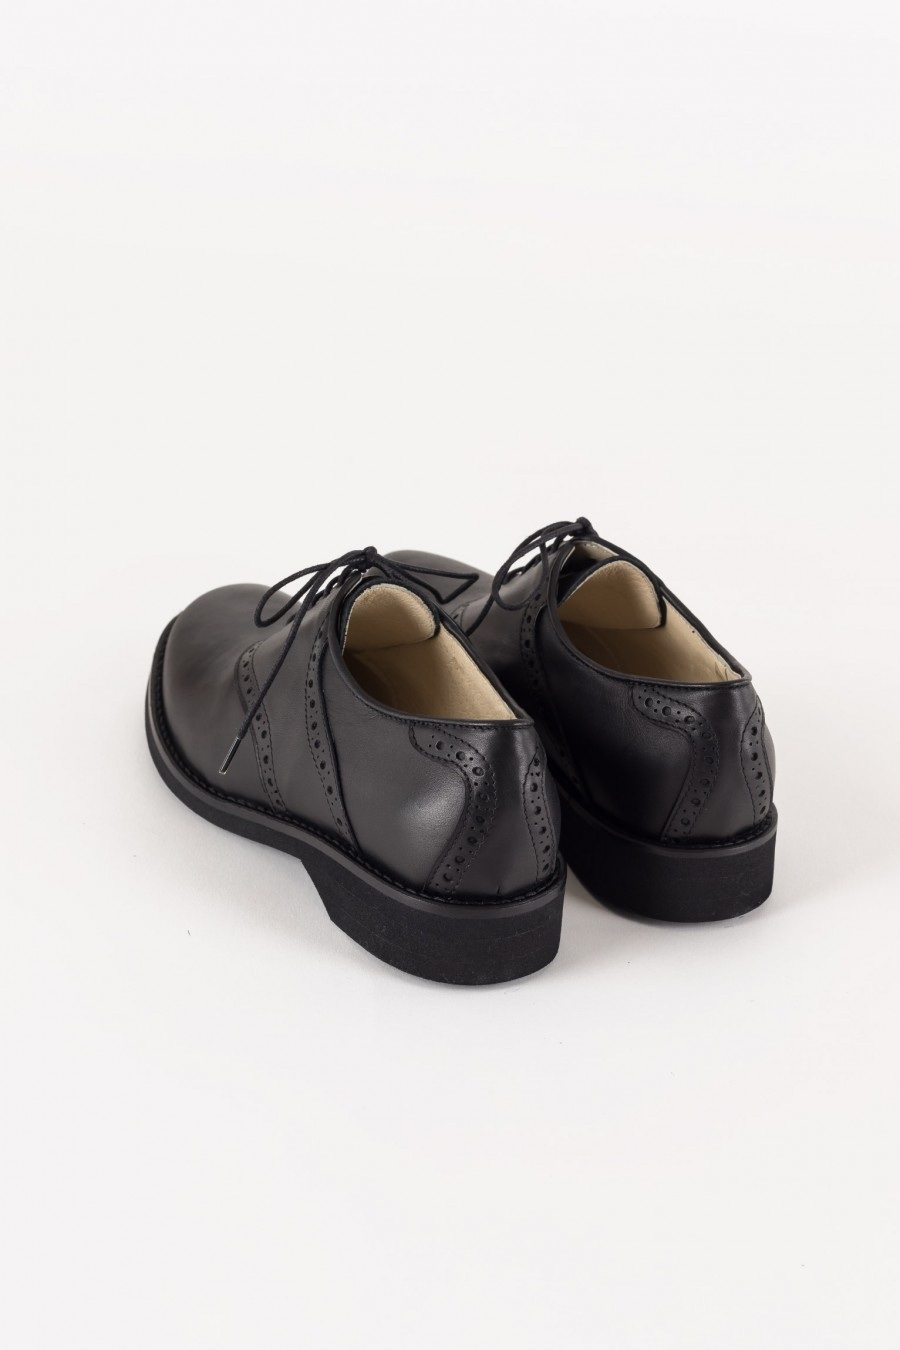 Black shoes with rubber sole